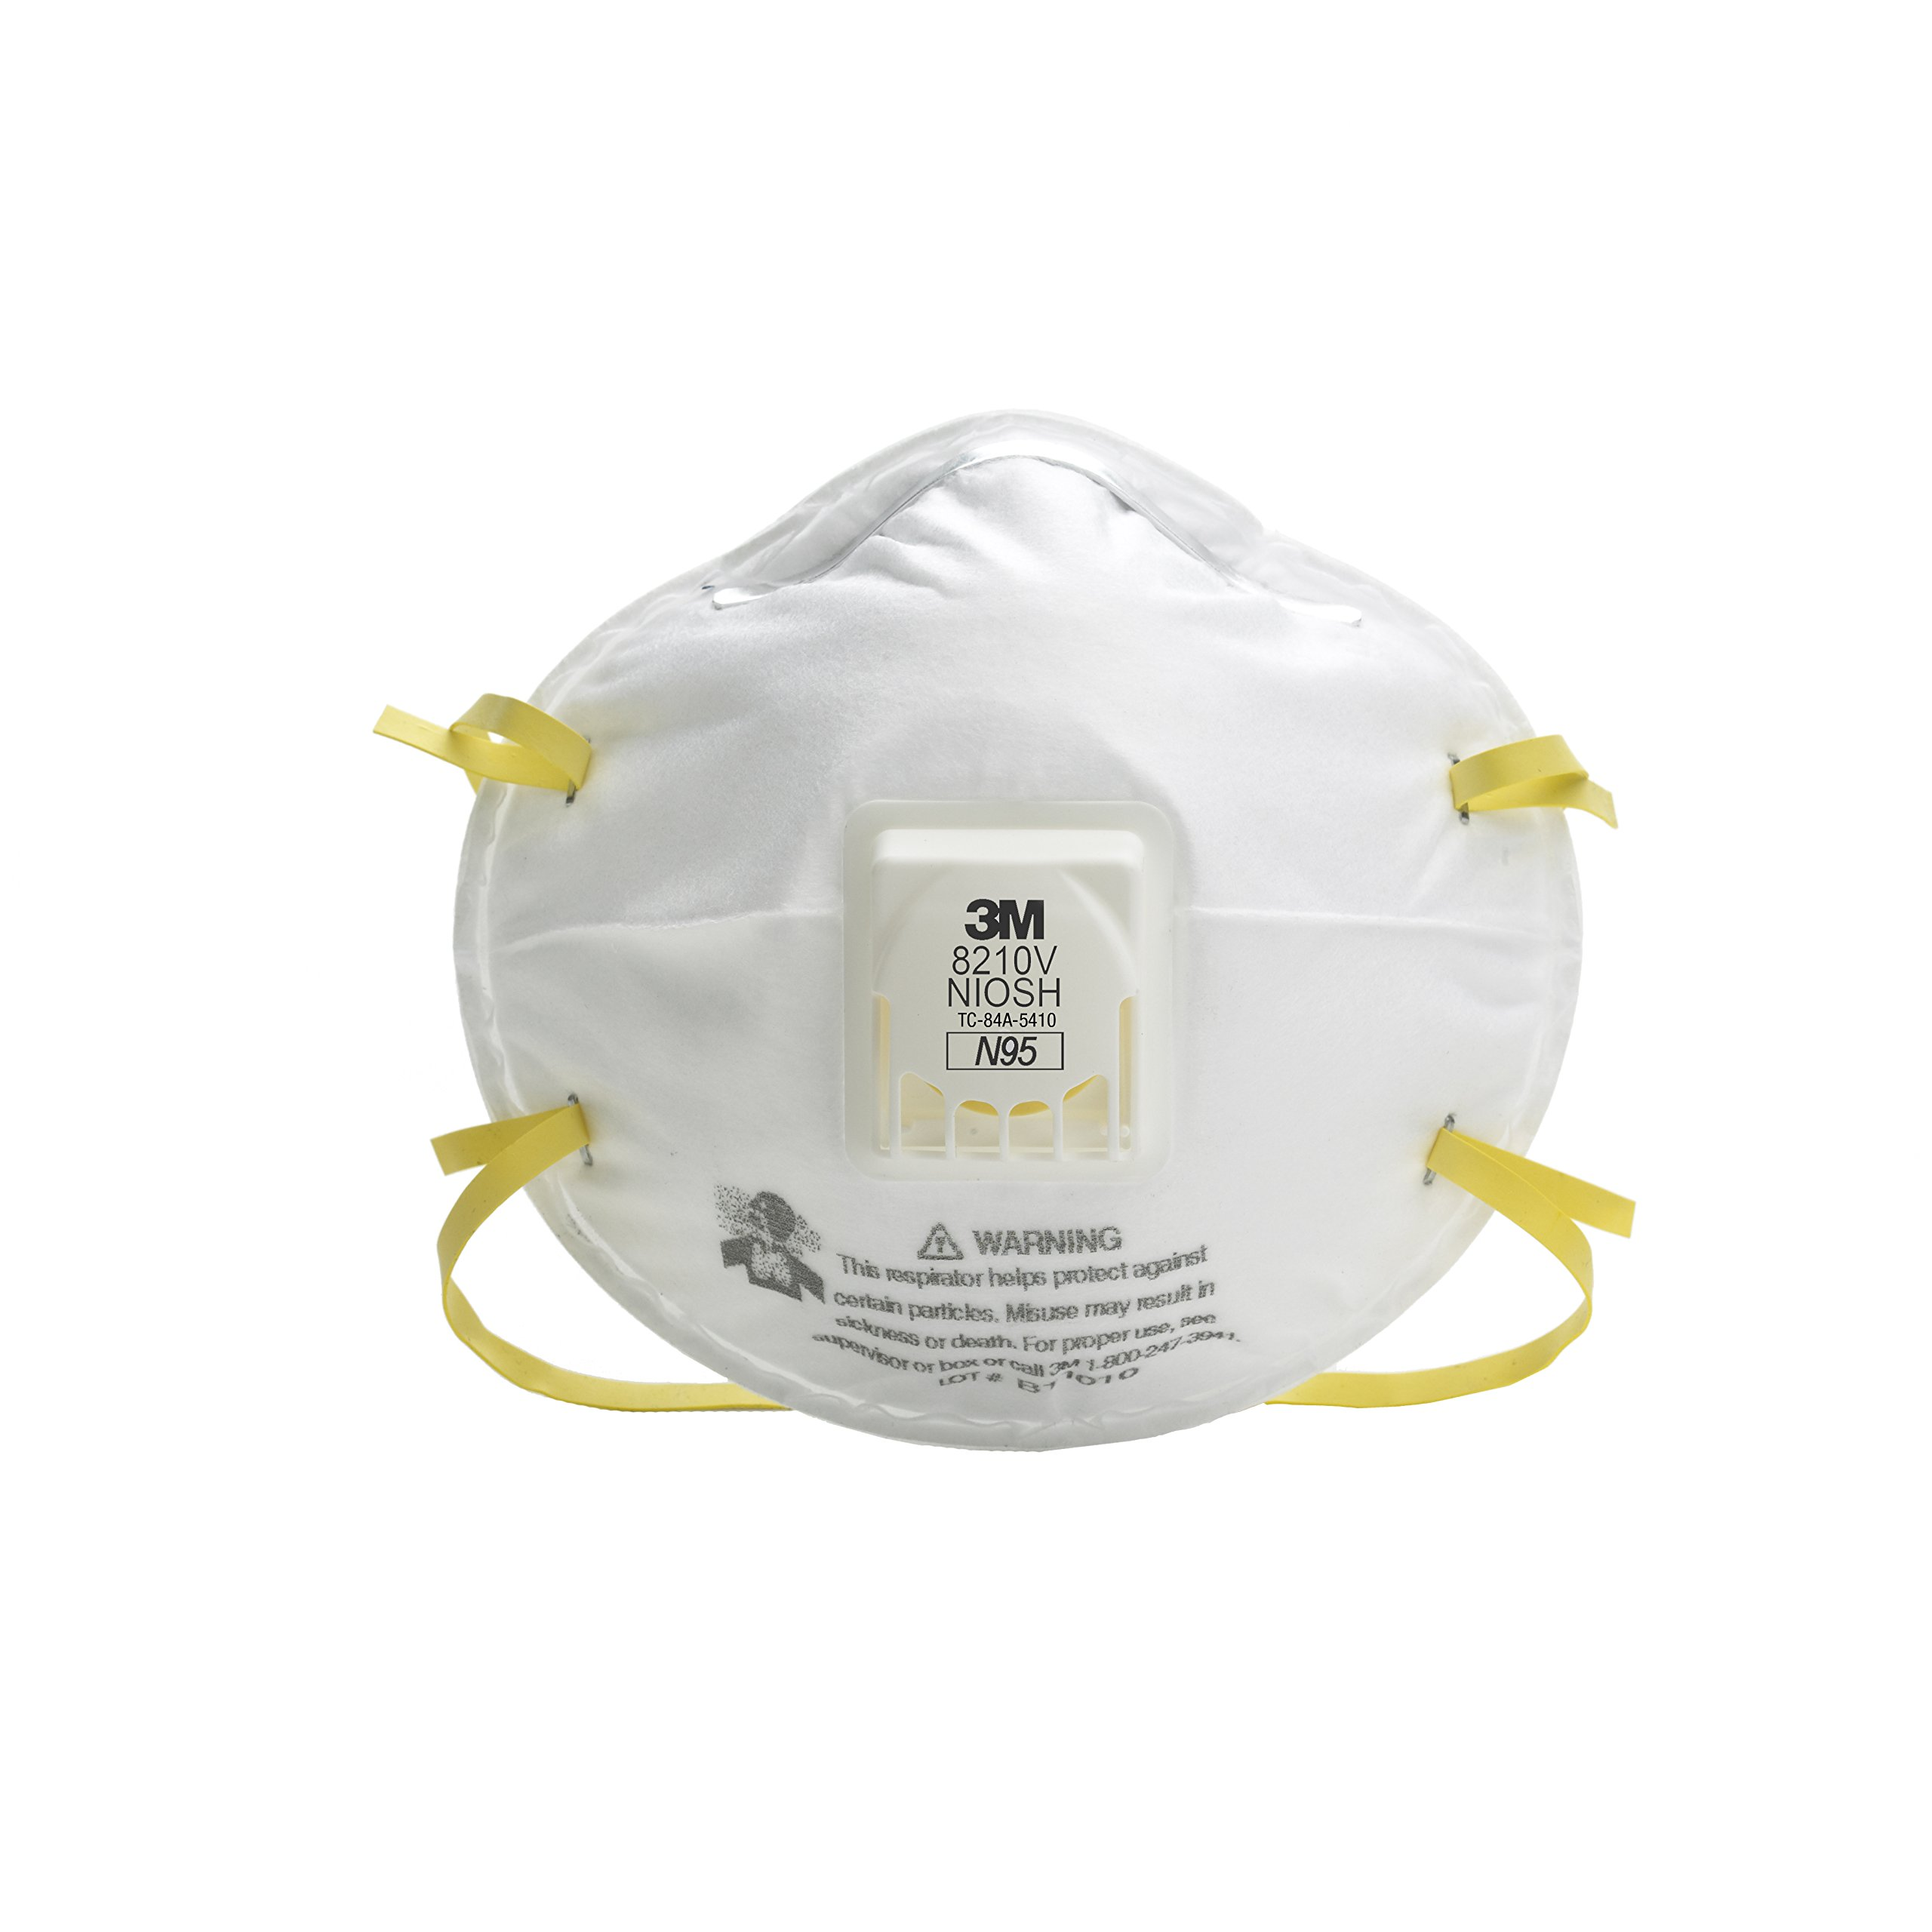 3M(TM) Particulate Respirator 8210V, N95 Respiratory Protection 10/Box